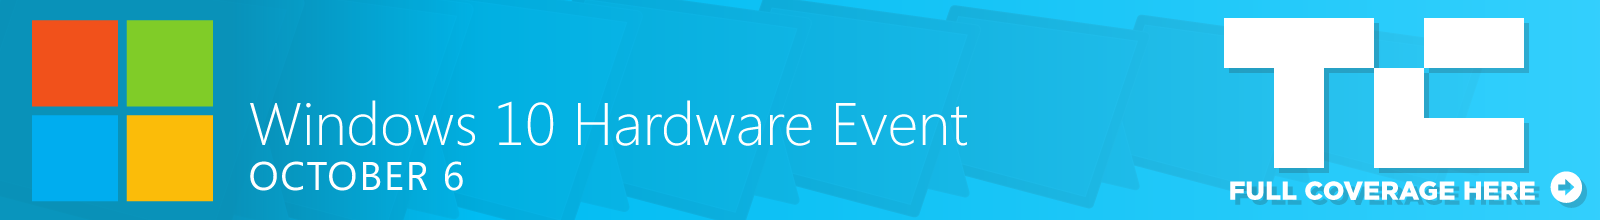 Windows 10 Hardware Event